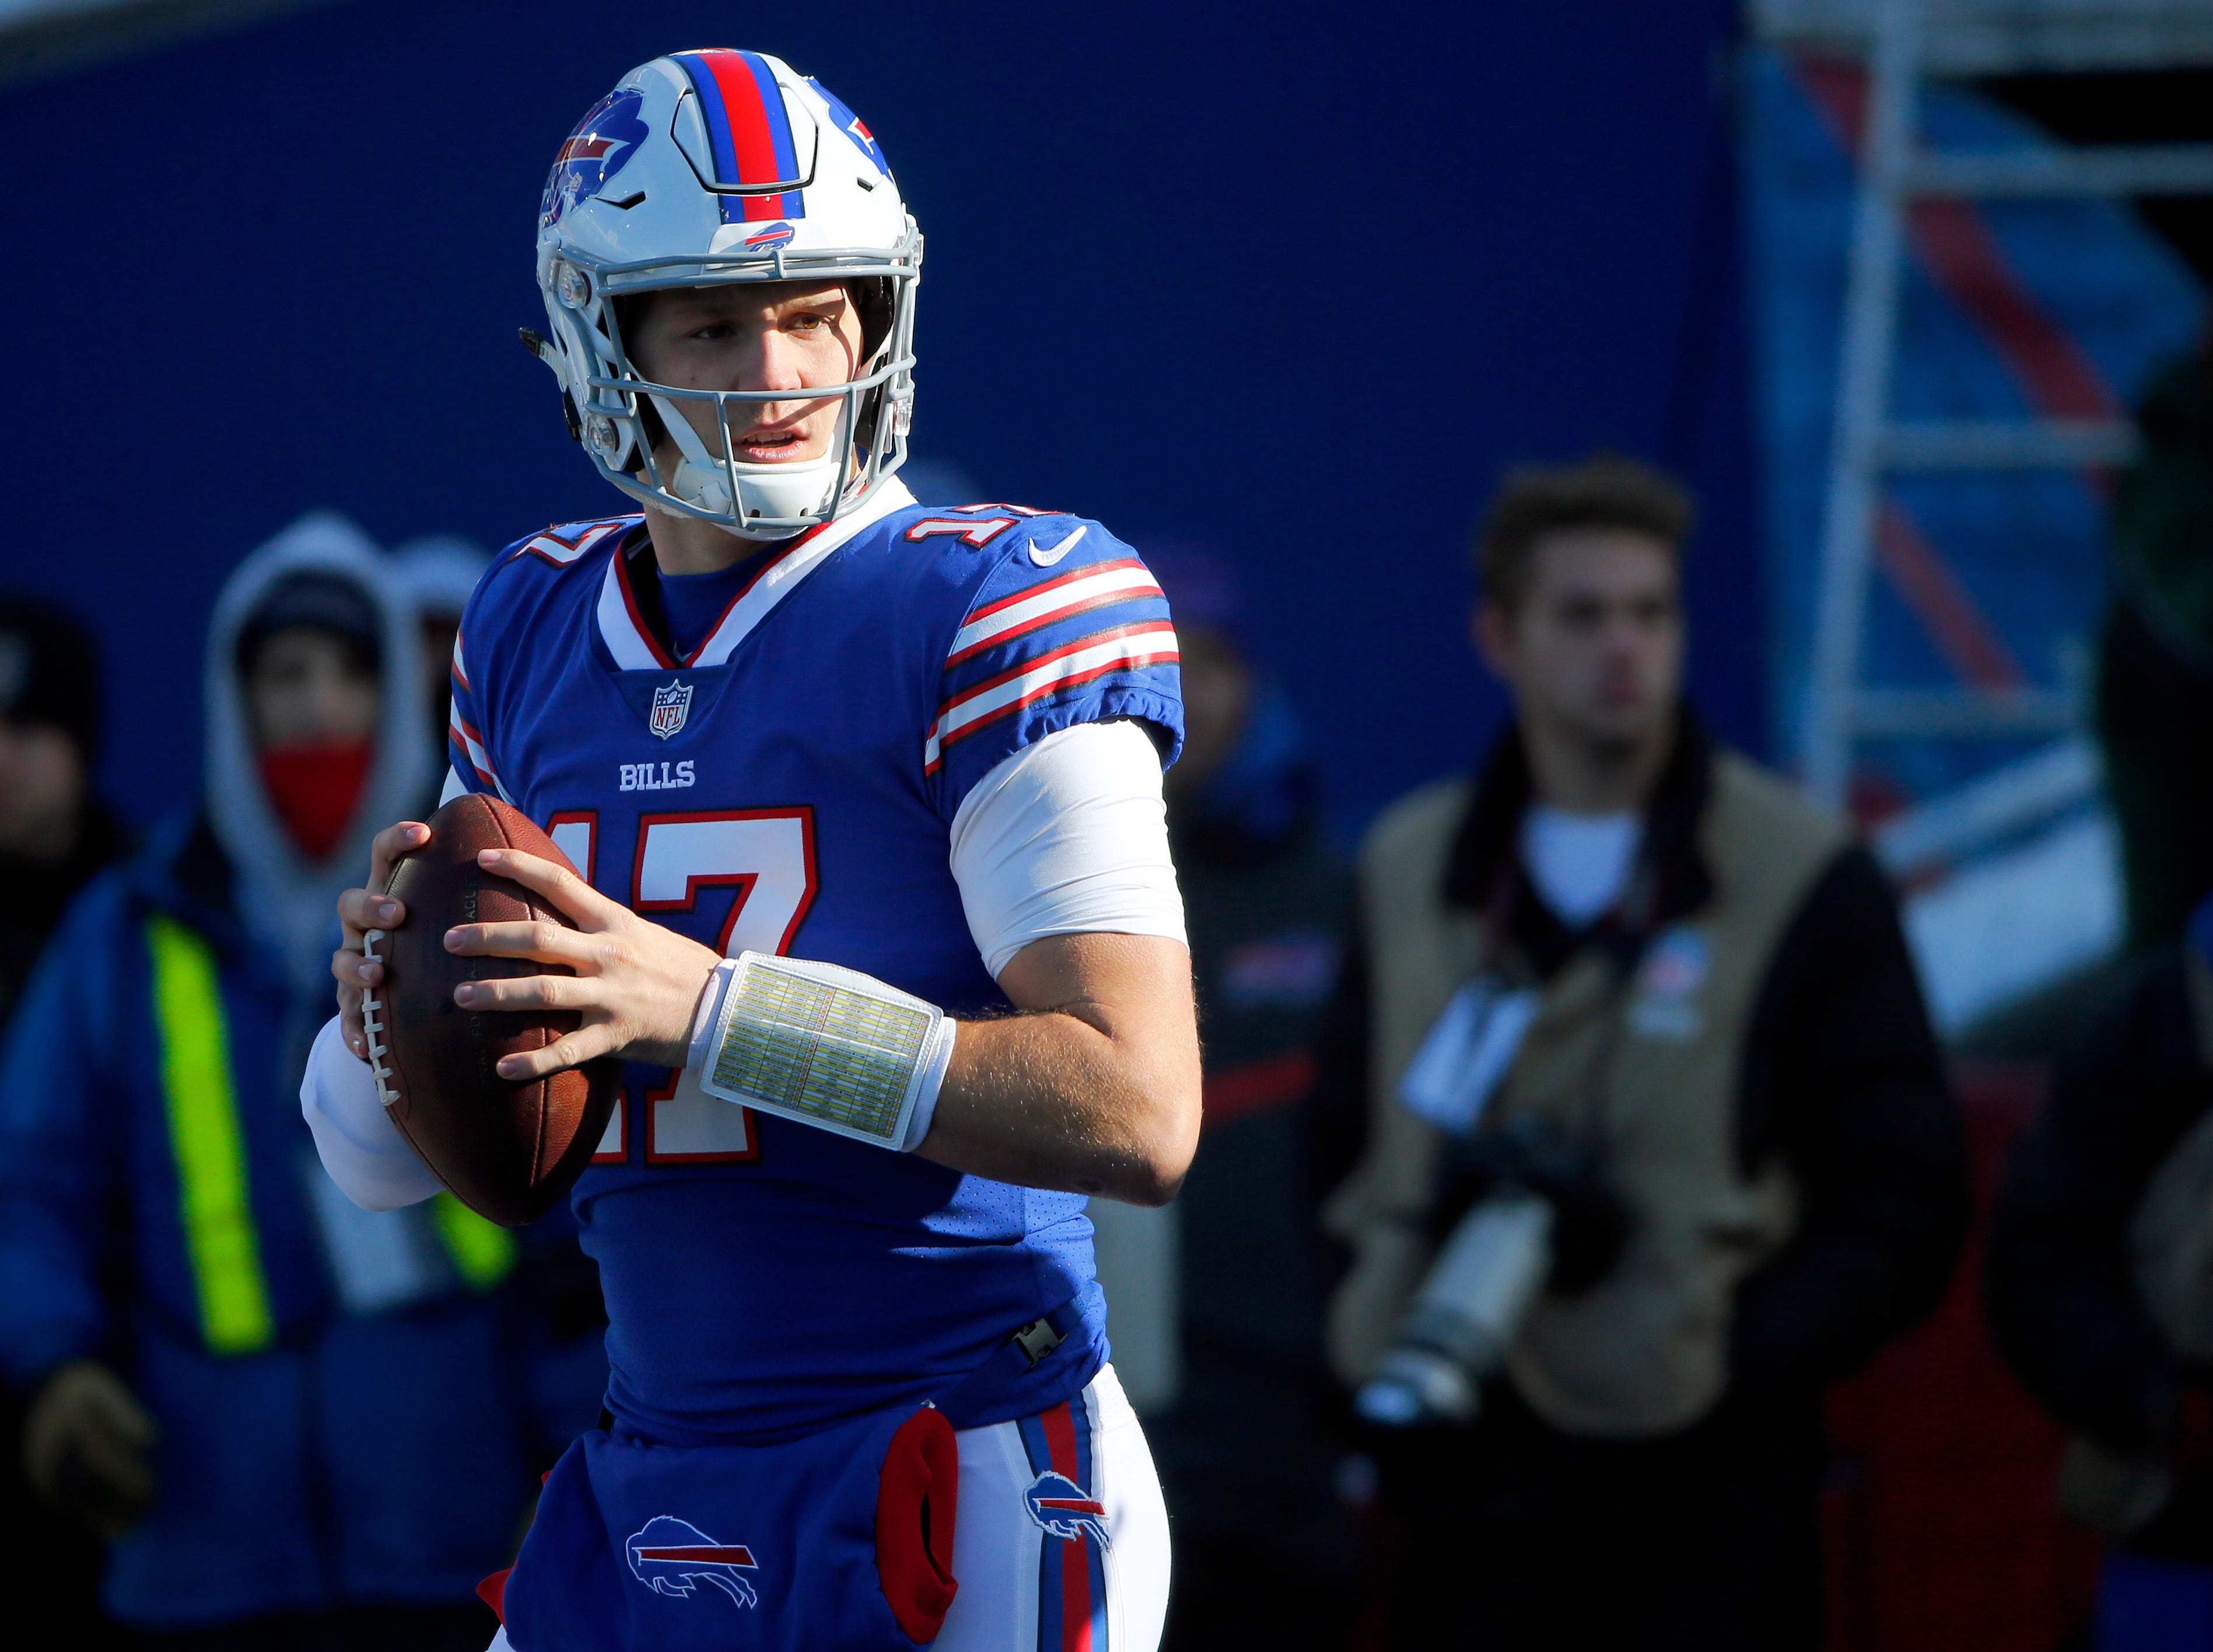 Buffalo Bills quarterback Josh Allen warms up before an NFL football game against the New York Jets, Sunday, Dec. 9, 2018, in Orchard Park, N.Y. (AP Photo/Jeffrey T. Barnes)